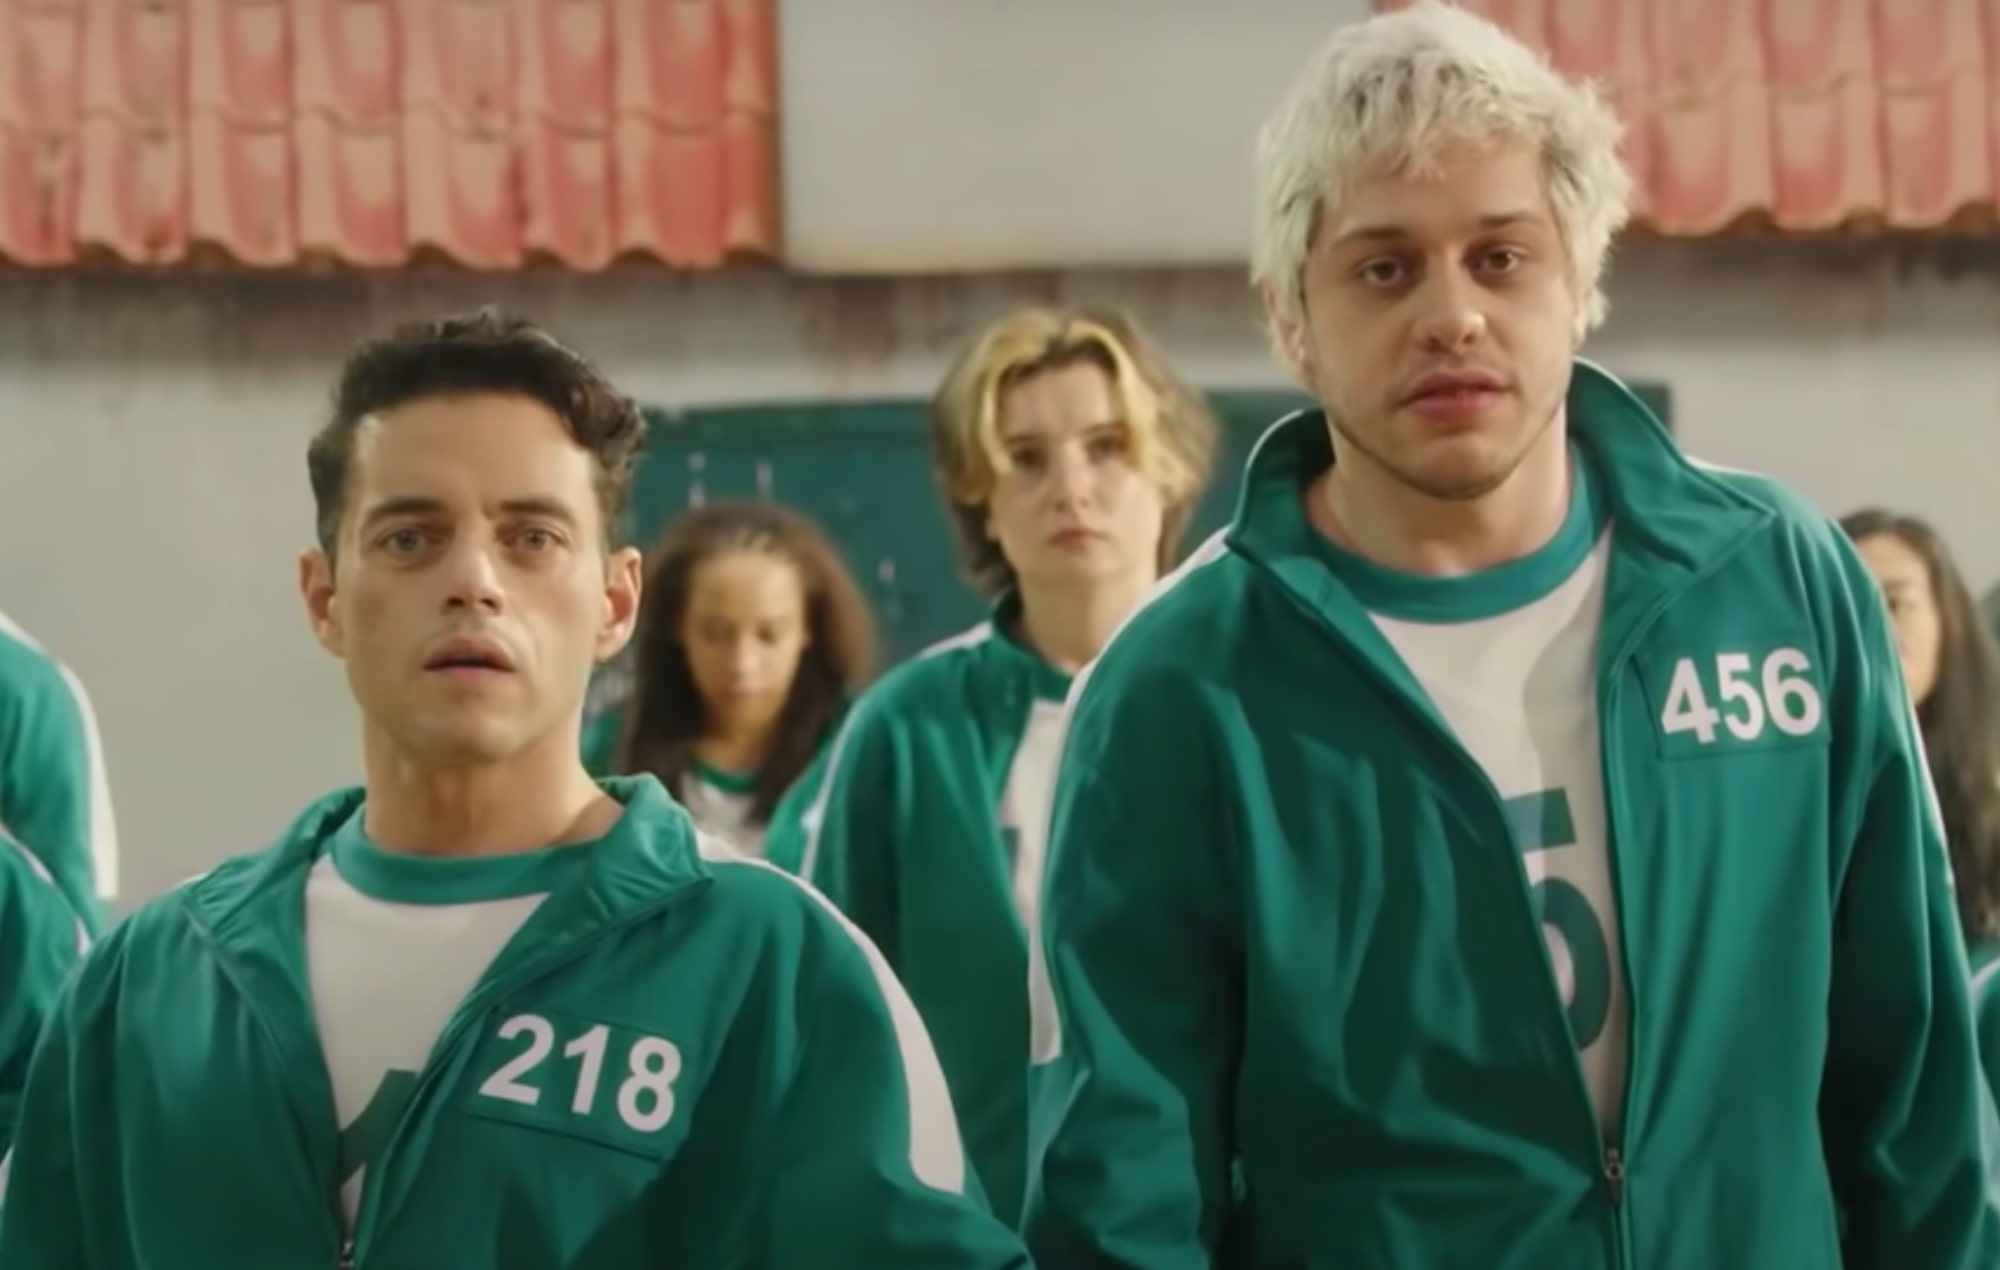 Rami Malek and Pete Davidson sing a 'Squid Game' country song on 'SNL'